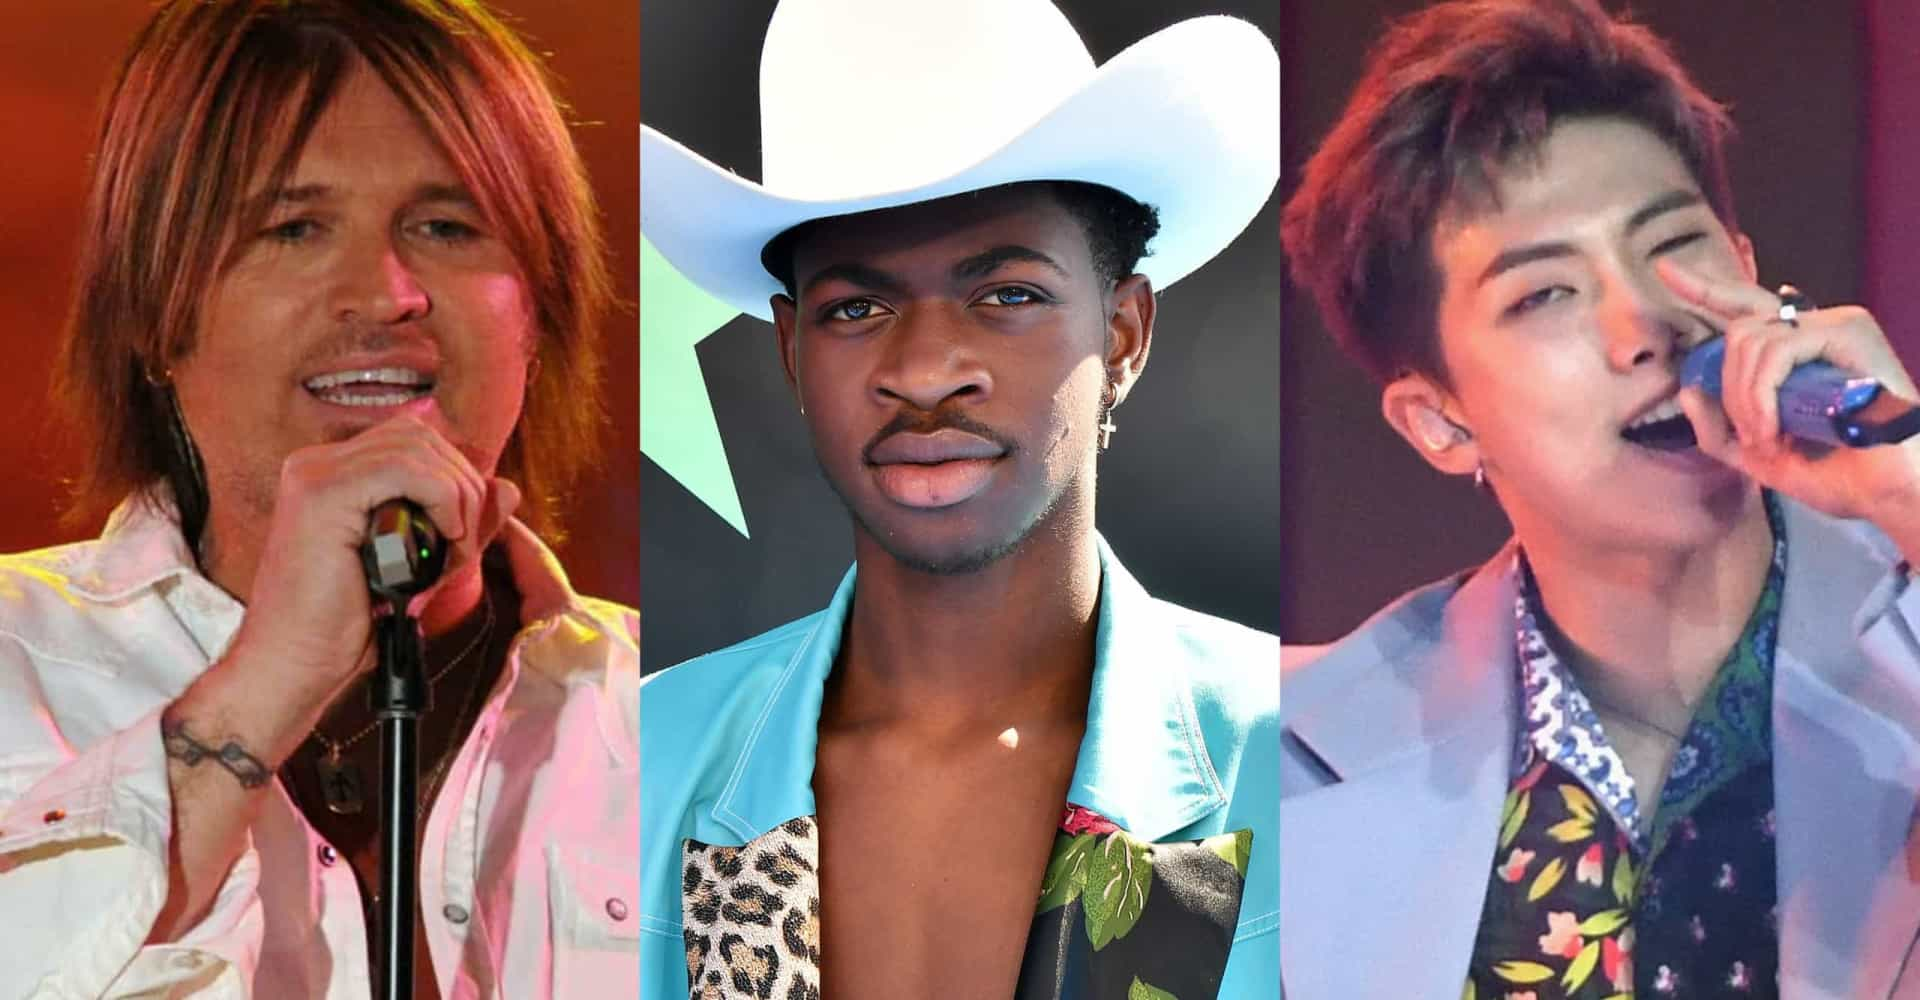 'Seoul Town Road' and other crazy cross-genre collabs